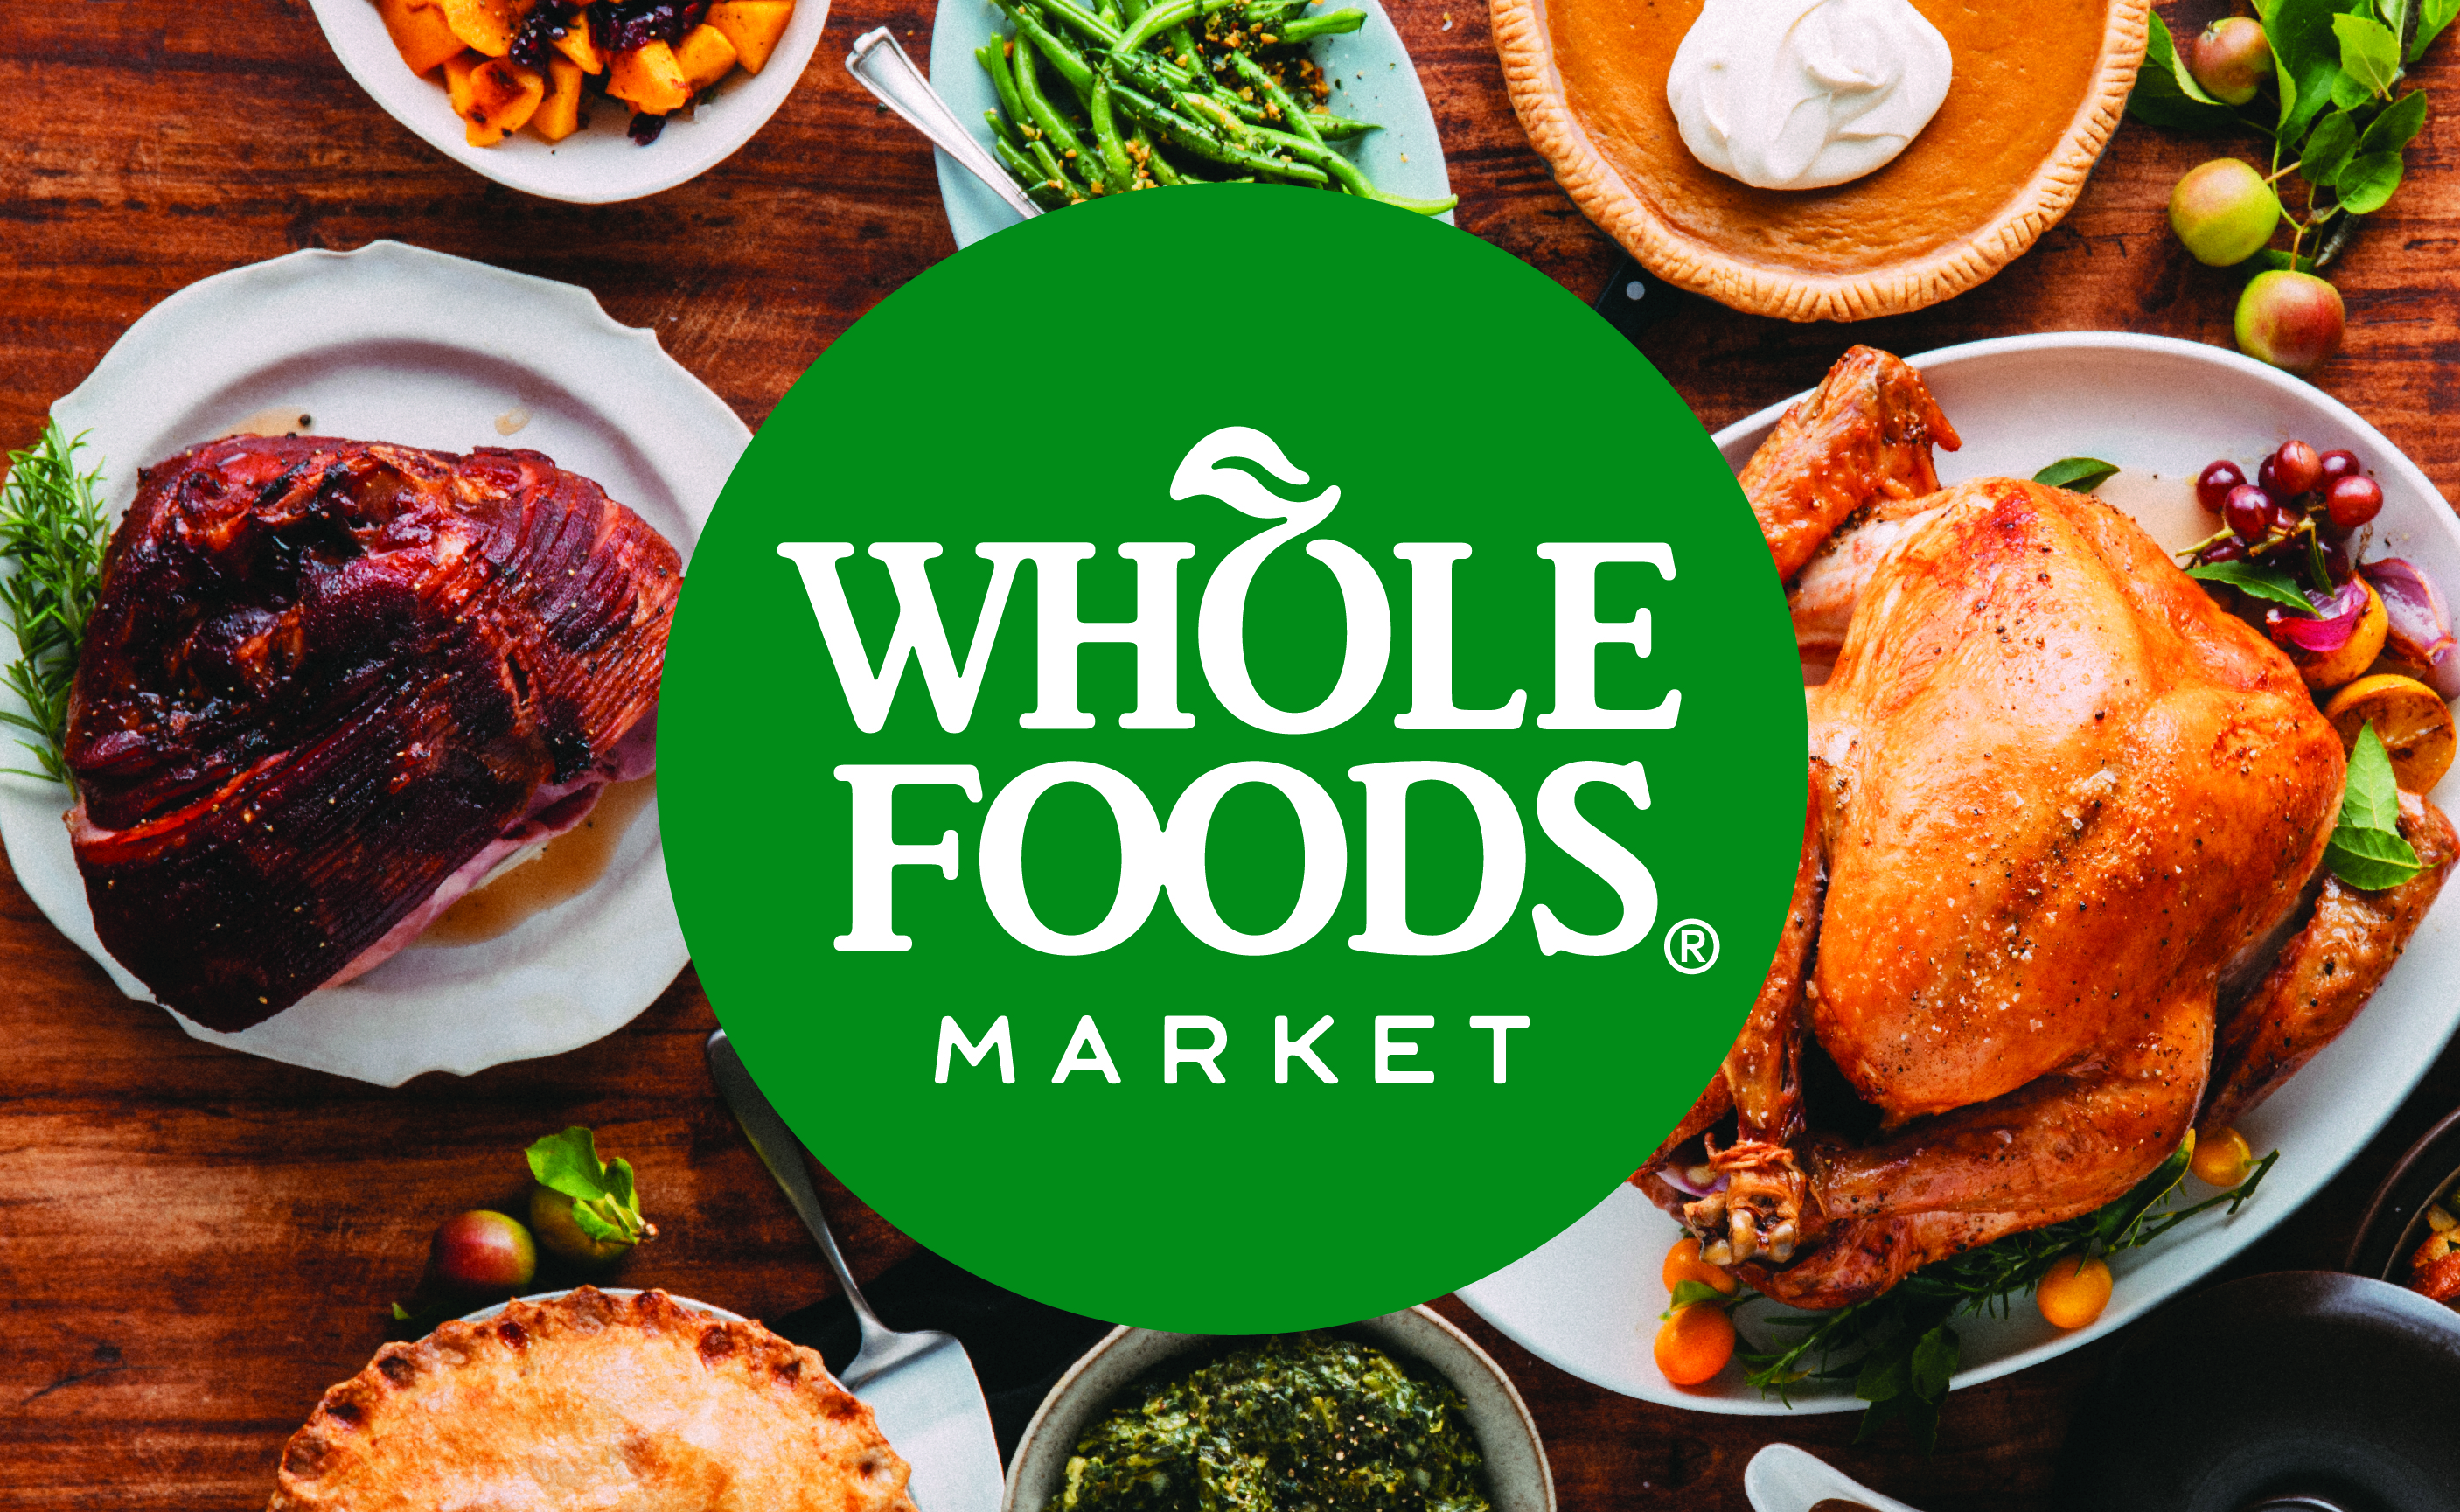 whole food nadler tushmand ca mod4 Free essay: the inputs and outputs within an organization are extremely important when determining if their strategic goals and desired outcomes are being or.